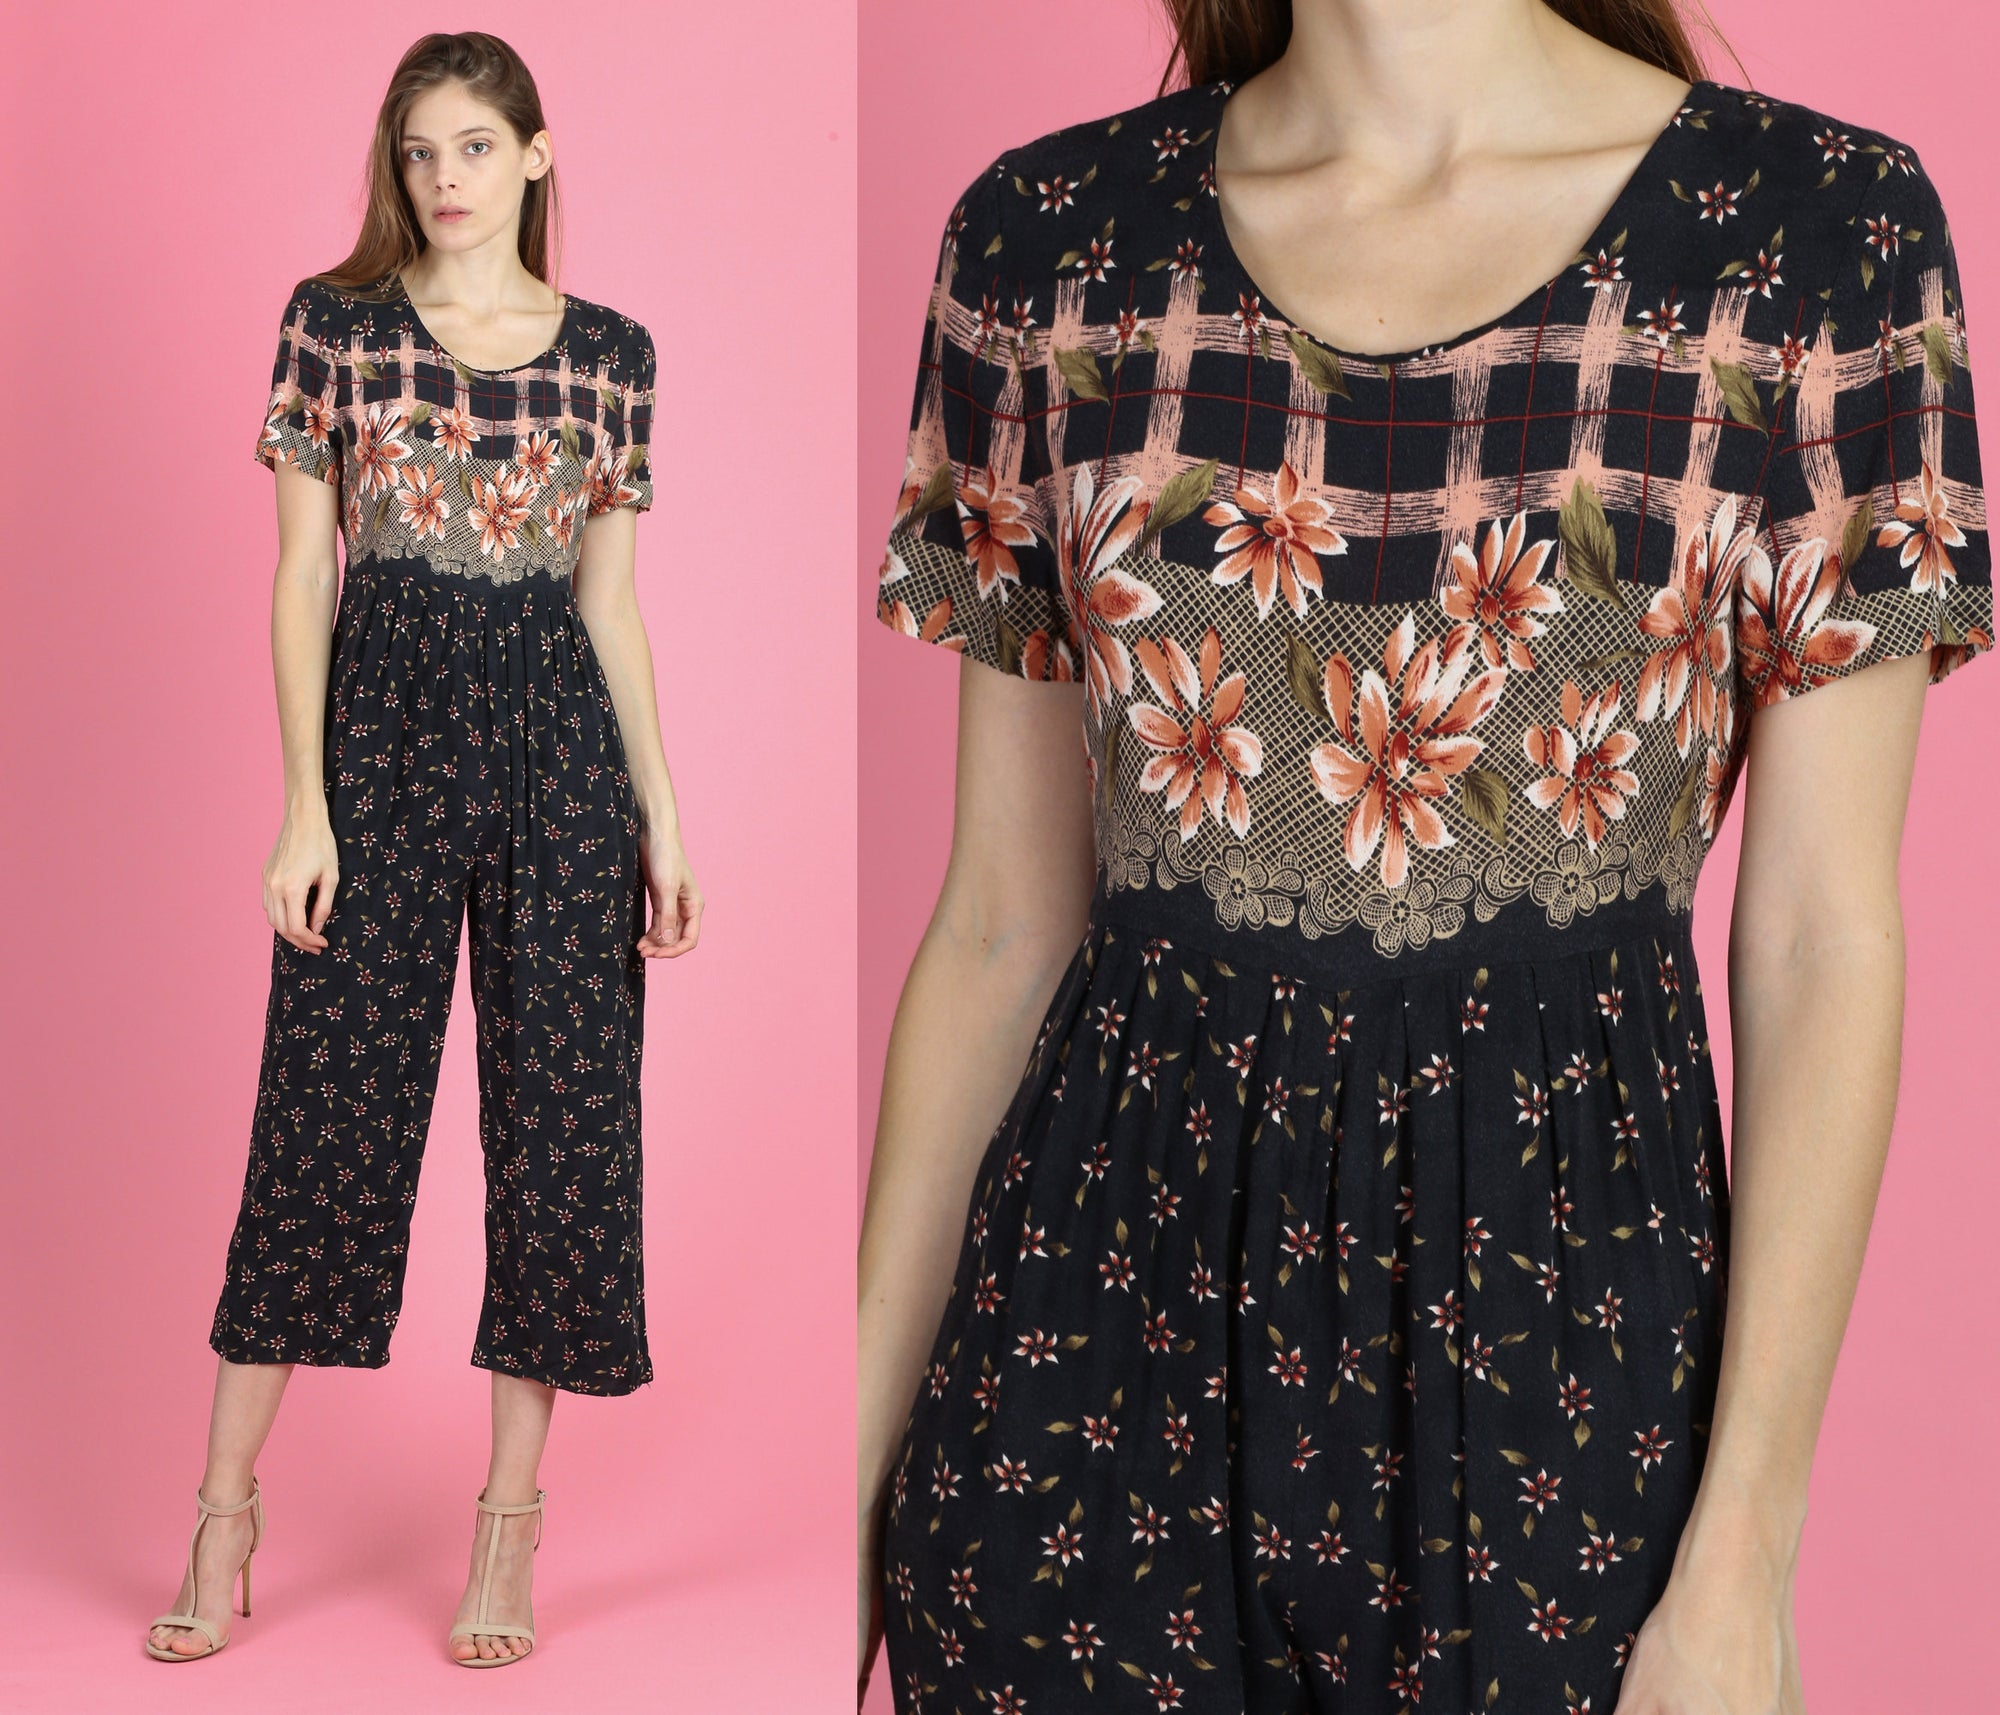 90s Grunge Floral Jumpsuit - Small to Medium